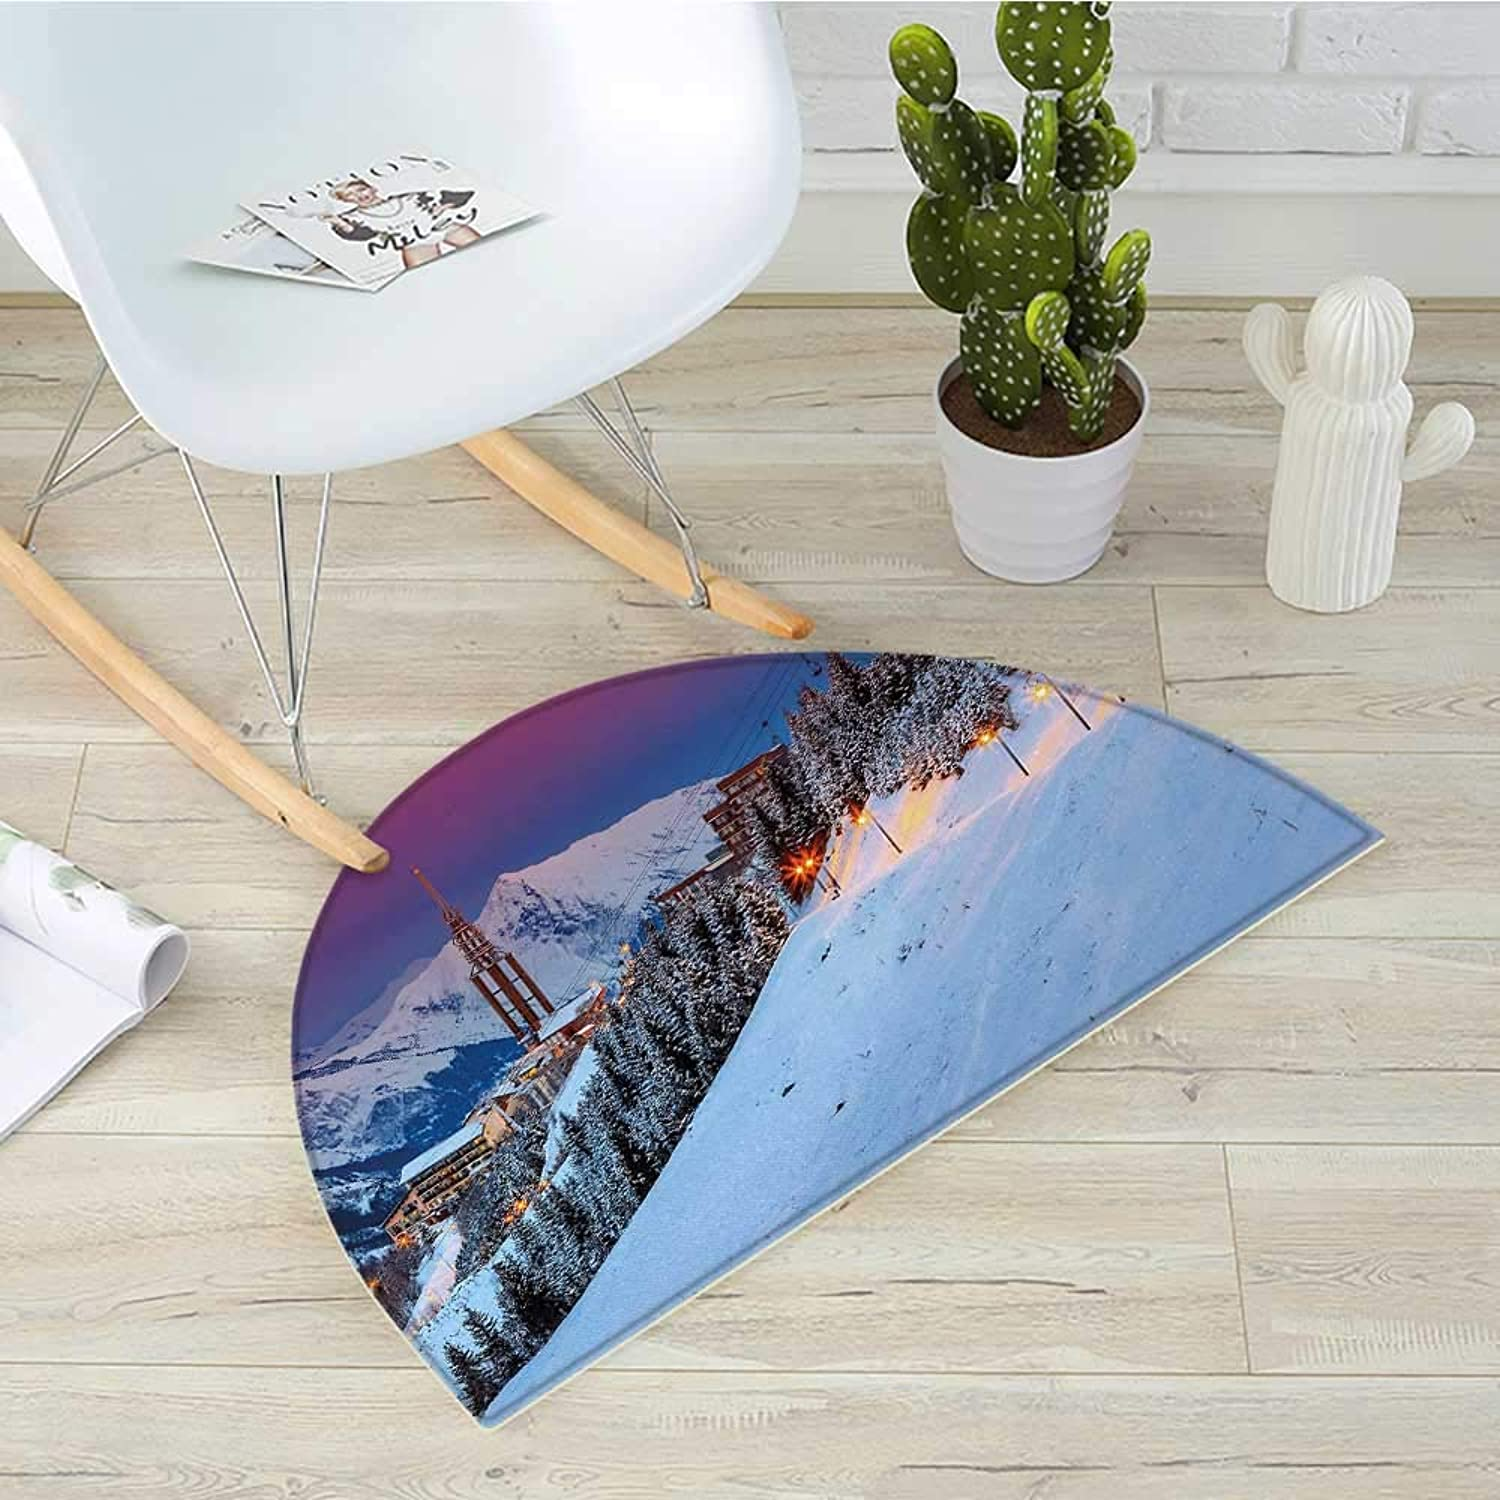 Winter Semicircular CushionMajestic Winter Sunrise Landscape and Ski Resort Spruce Pine Forest French Alps Entry Door Mat H 39.3  xD 59  Multicolor